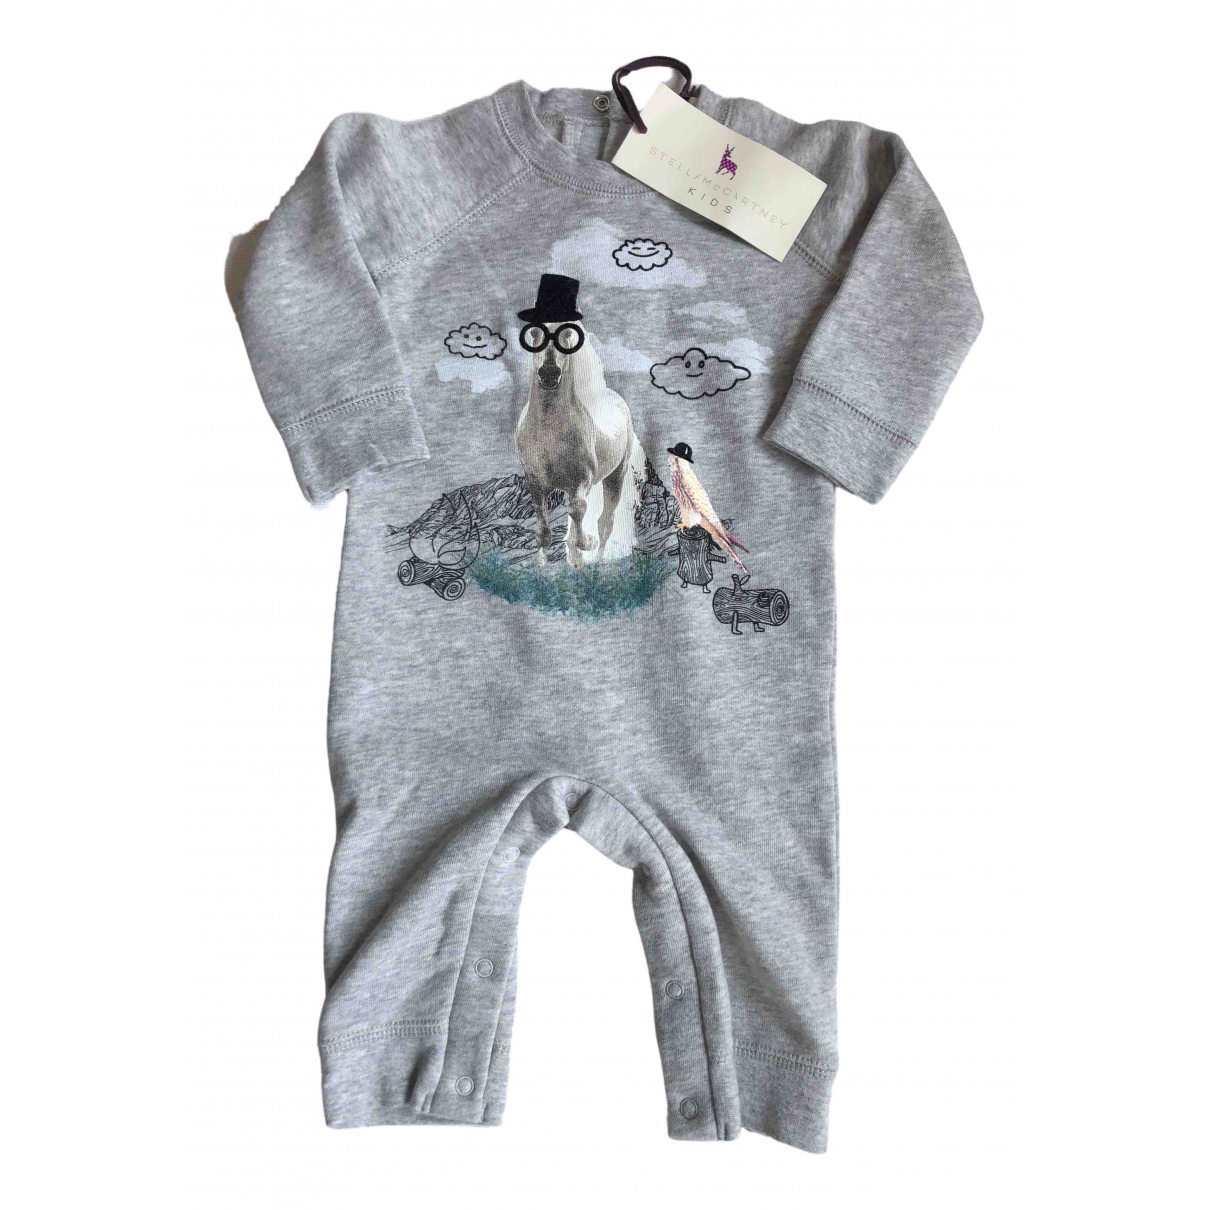 Stella Mccartney \N Grey Cotton Outfits for Kids 3 months - up to 60cm FR